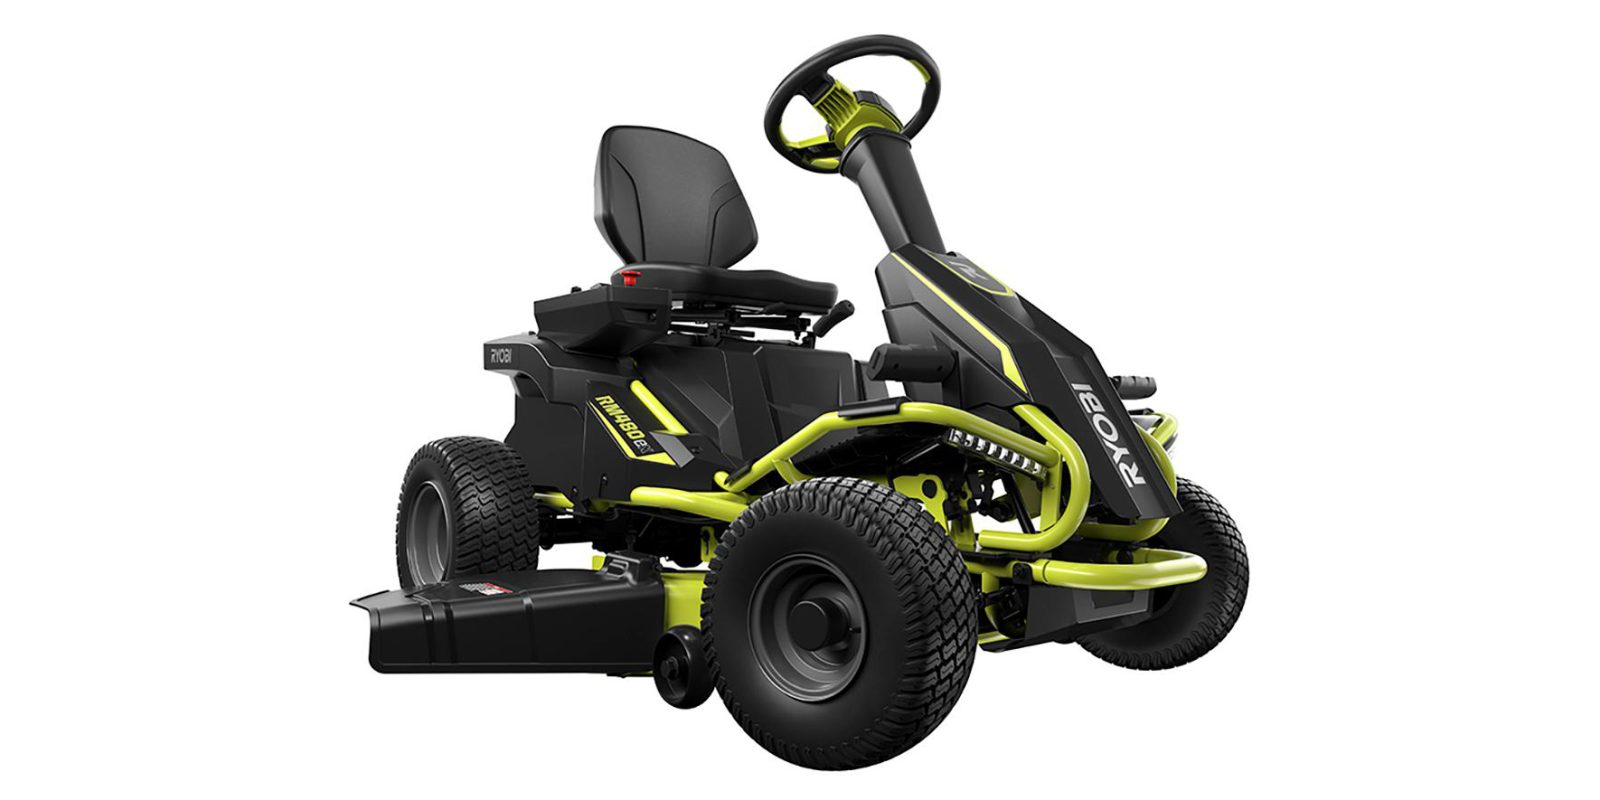 Green Deals: Ryobi 38-inch 100Ah Electric Riding Lawn Mower $2,399 (Reg. $2,899), more